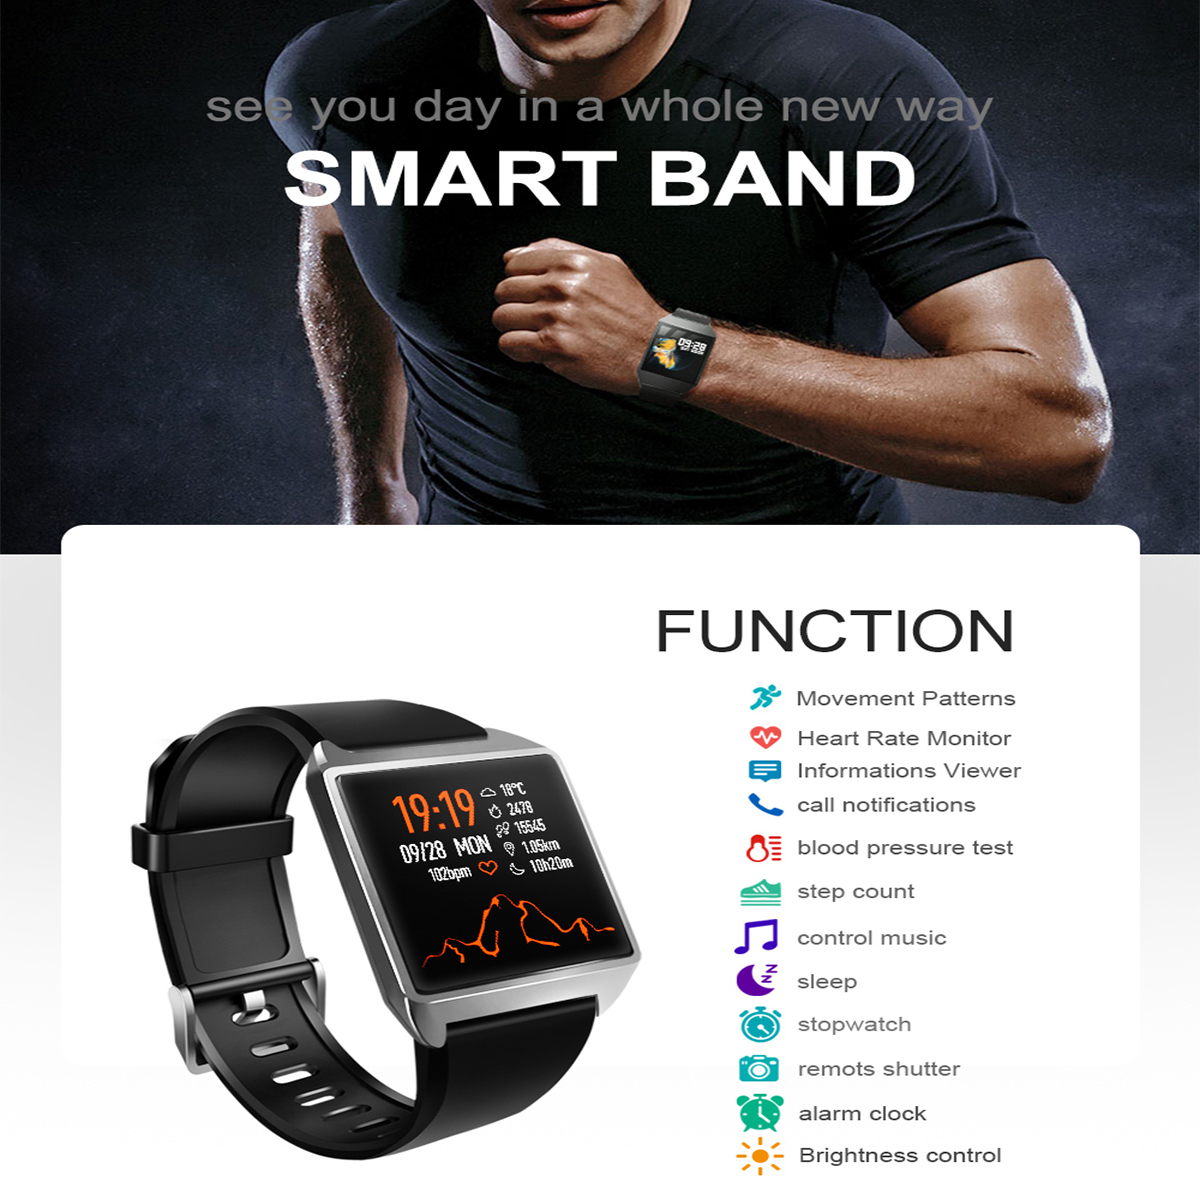 Bakeey-VO376C-13-HR-Blood-Pressure-Monitor-All-day-Activity-Record-IP68-Brightness-Control-Smart-Wat-1540449